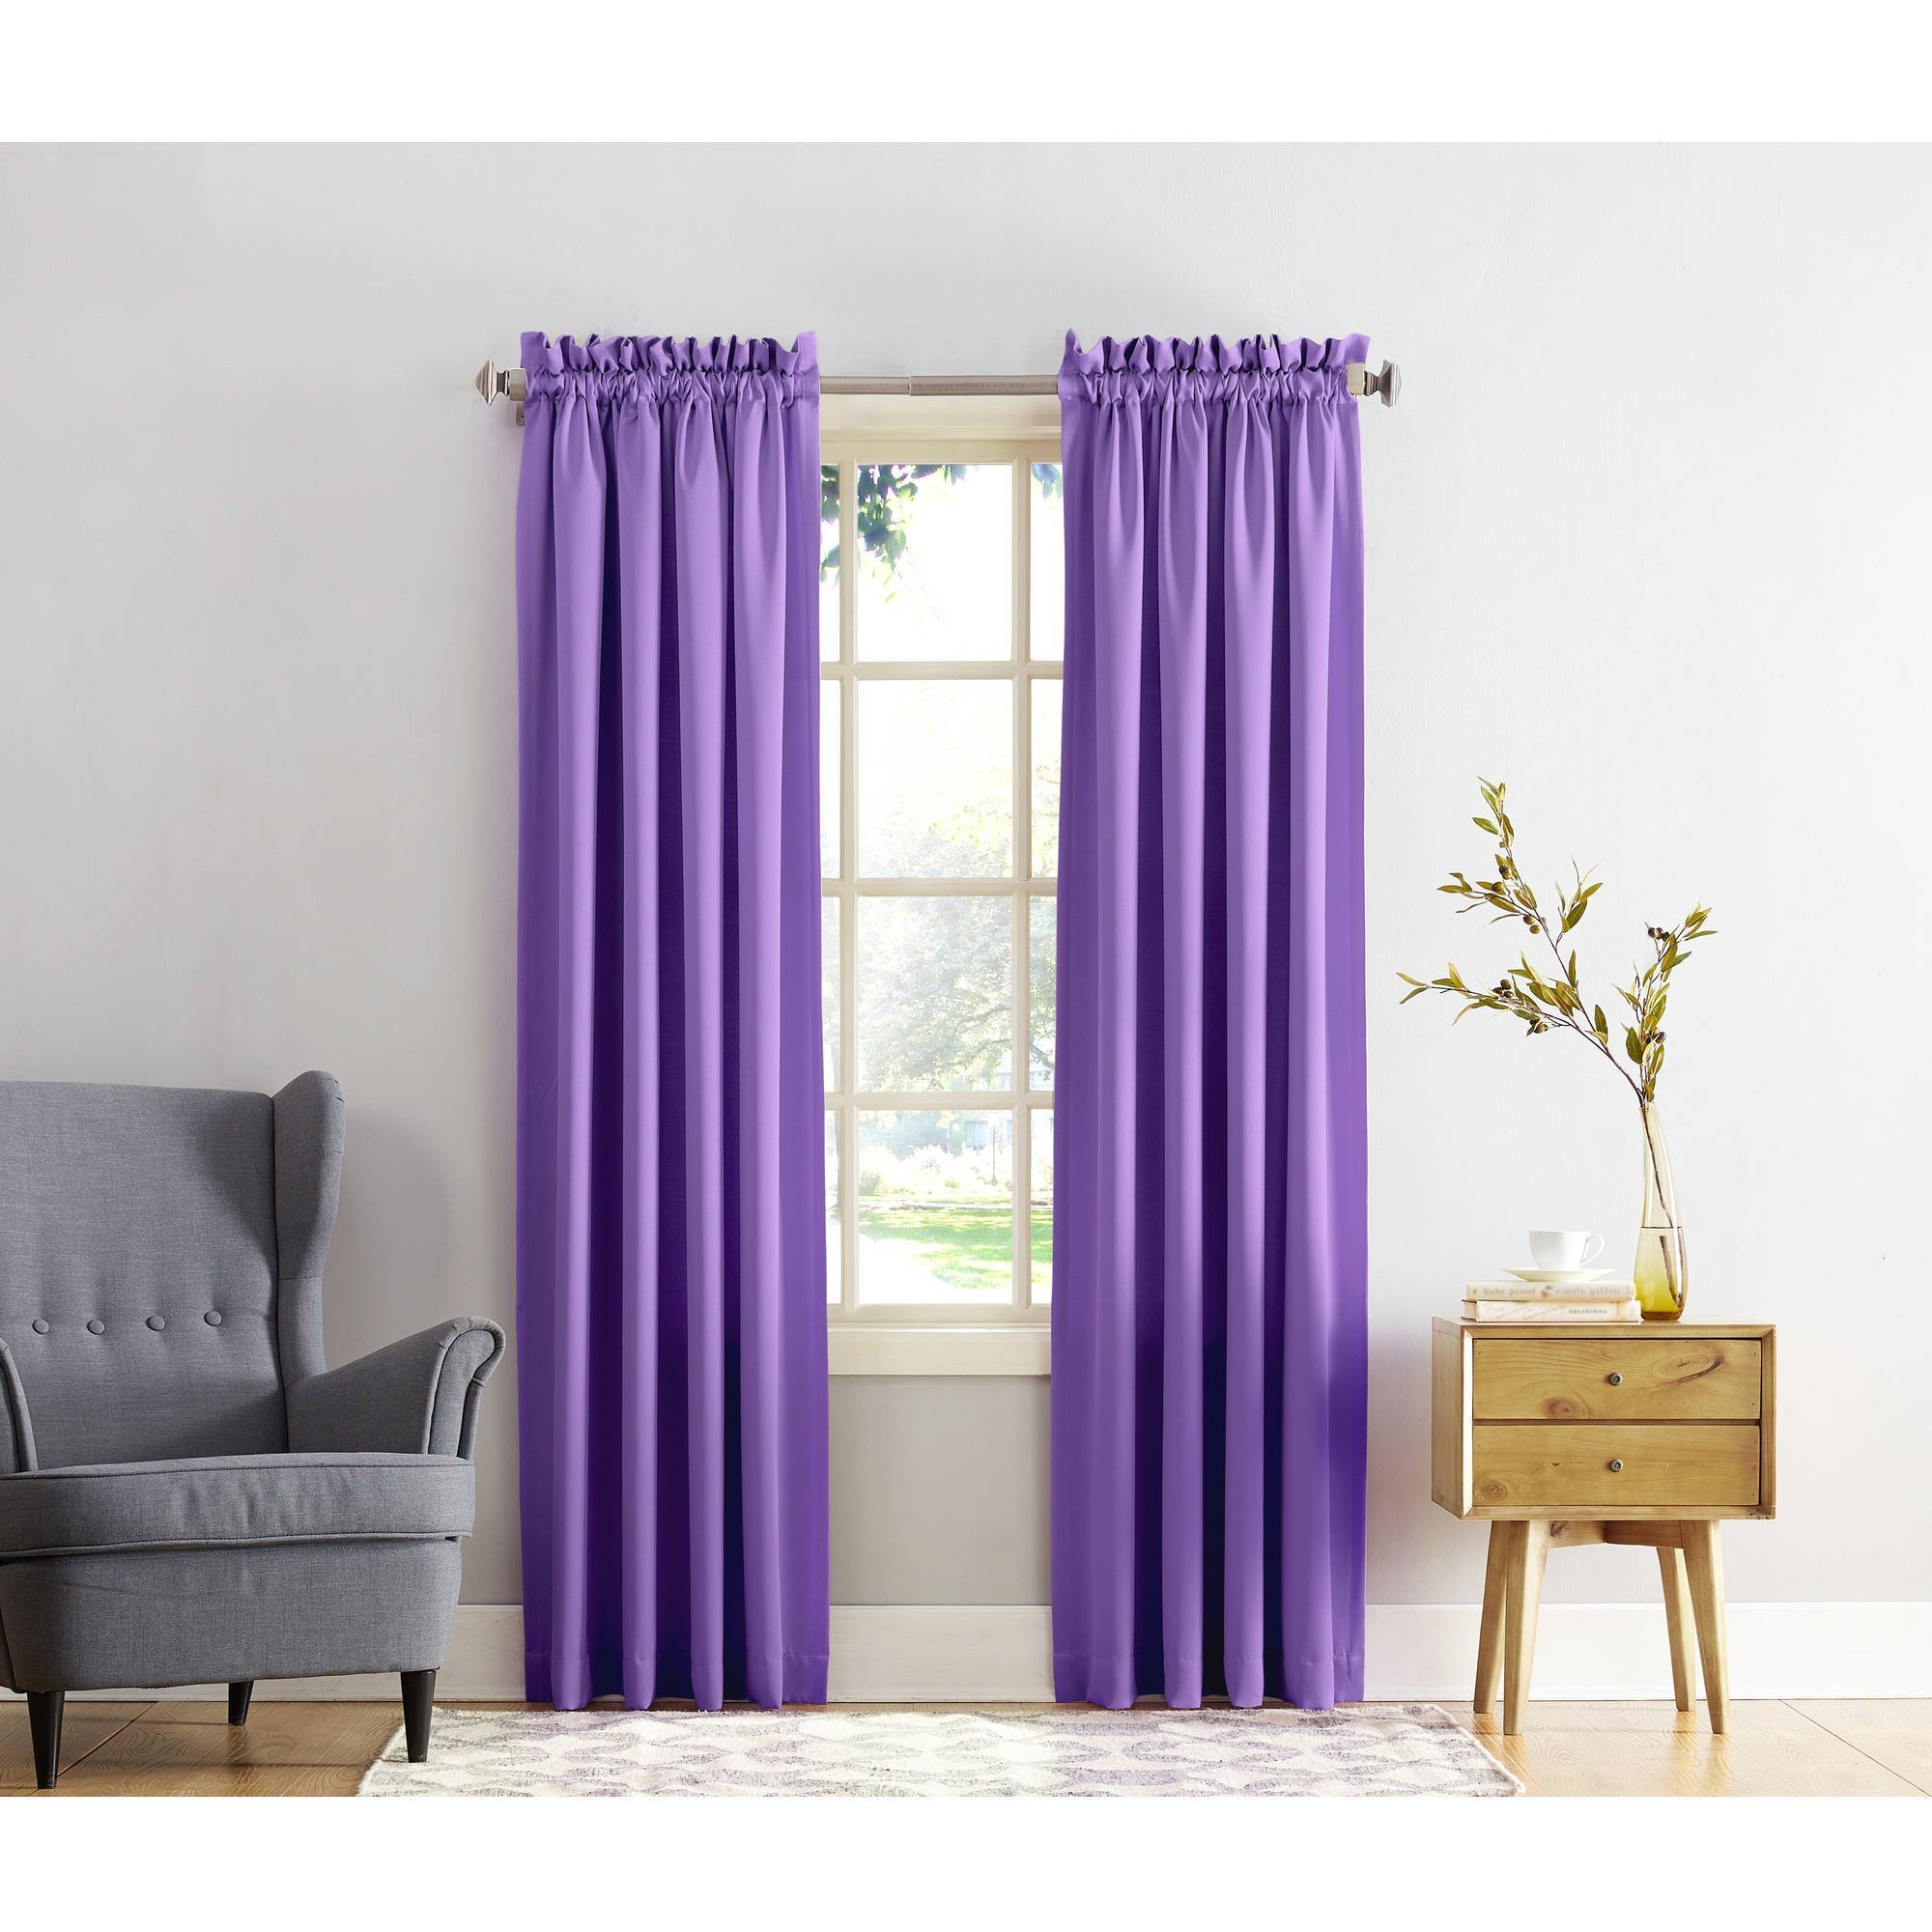 Best Mainstays Calix Fashion Window Curtain Set Of 2 Walmart Com With Pictures